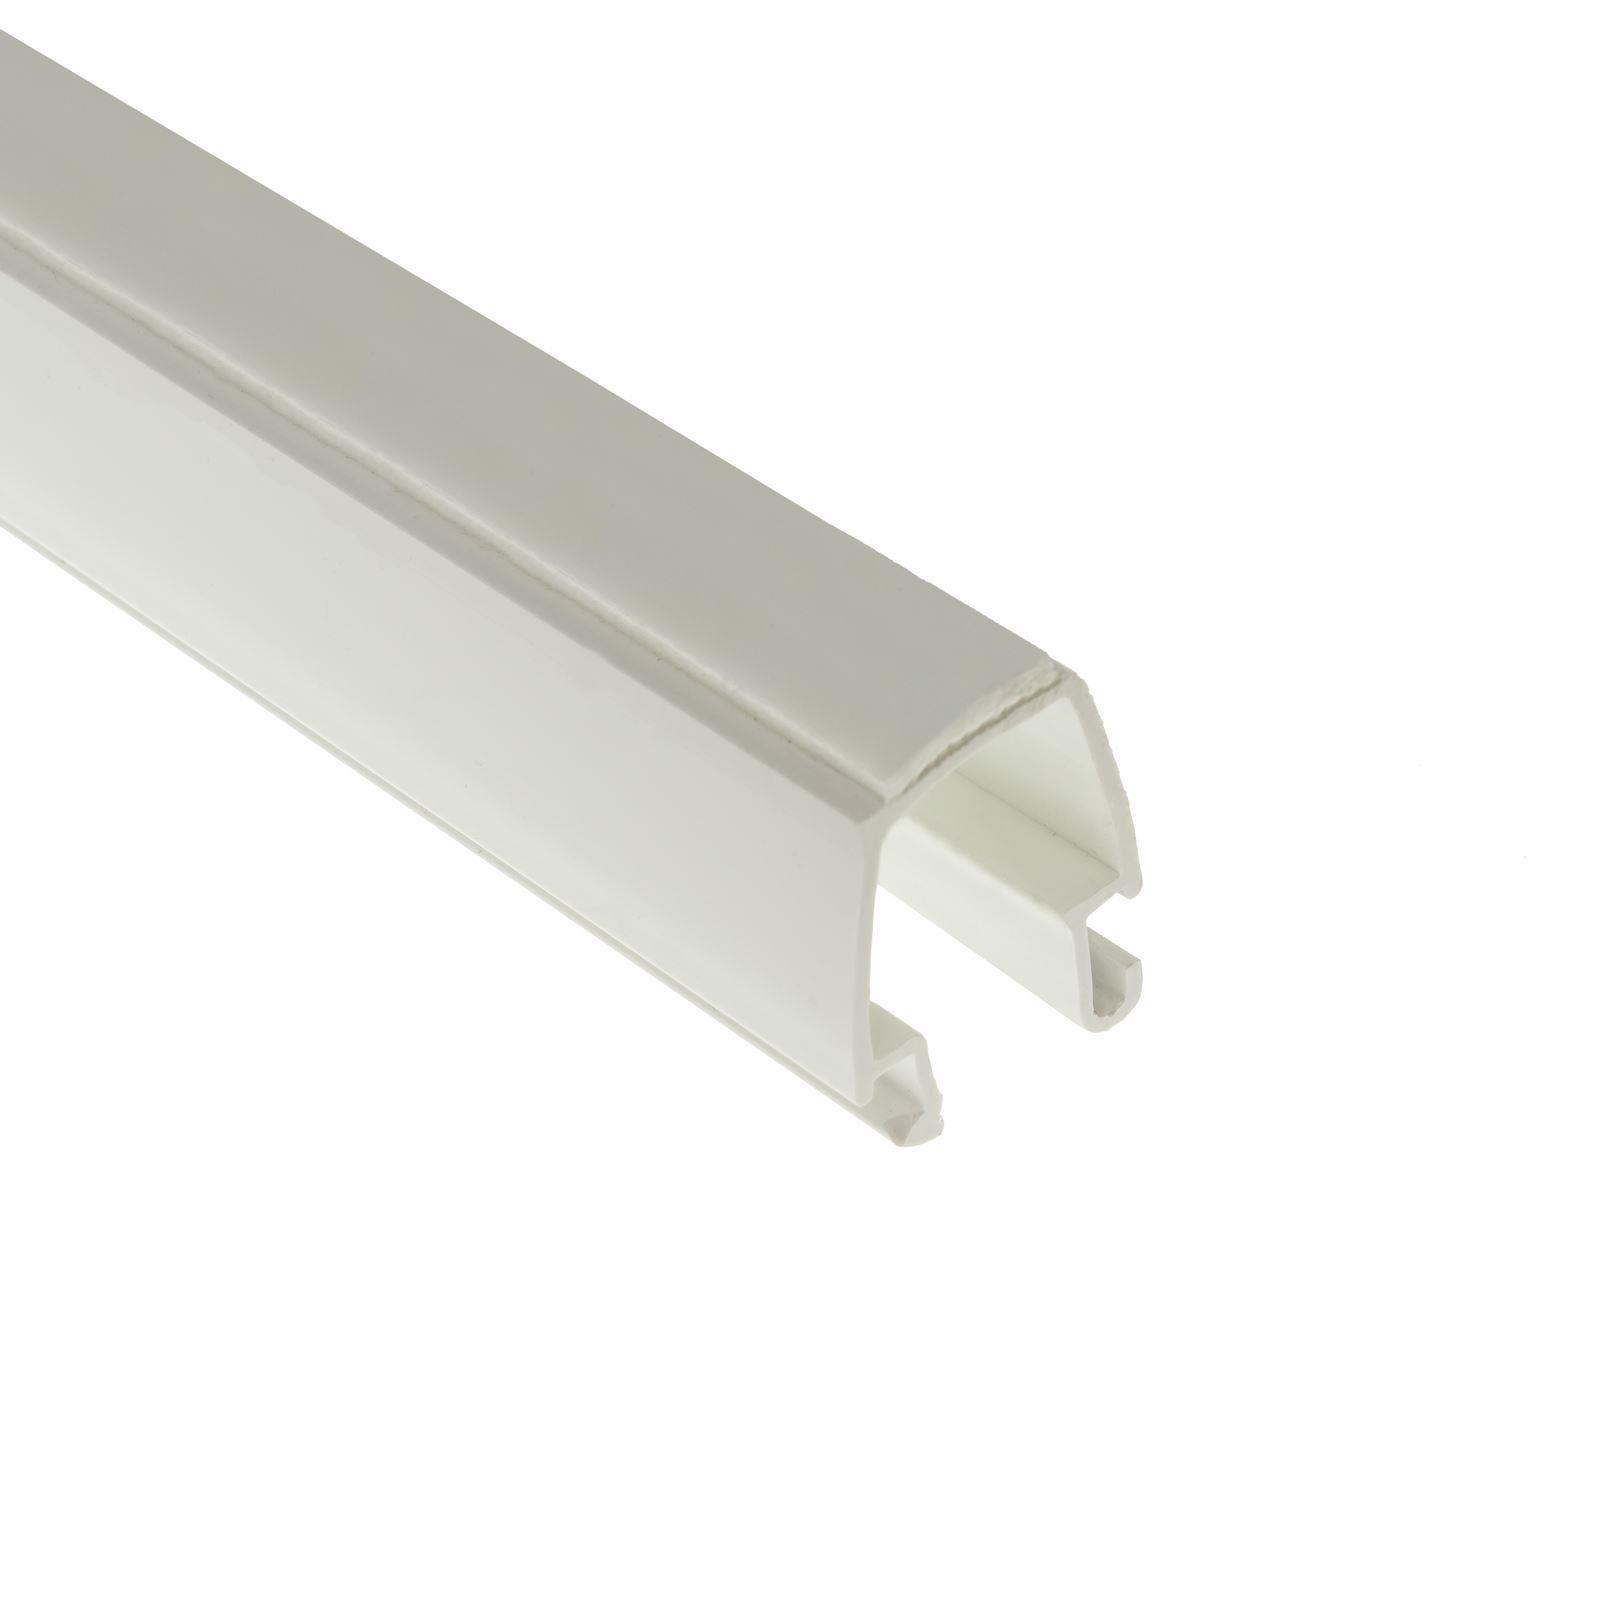 Ultraframe Glazing Support Trim Truly Pvc